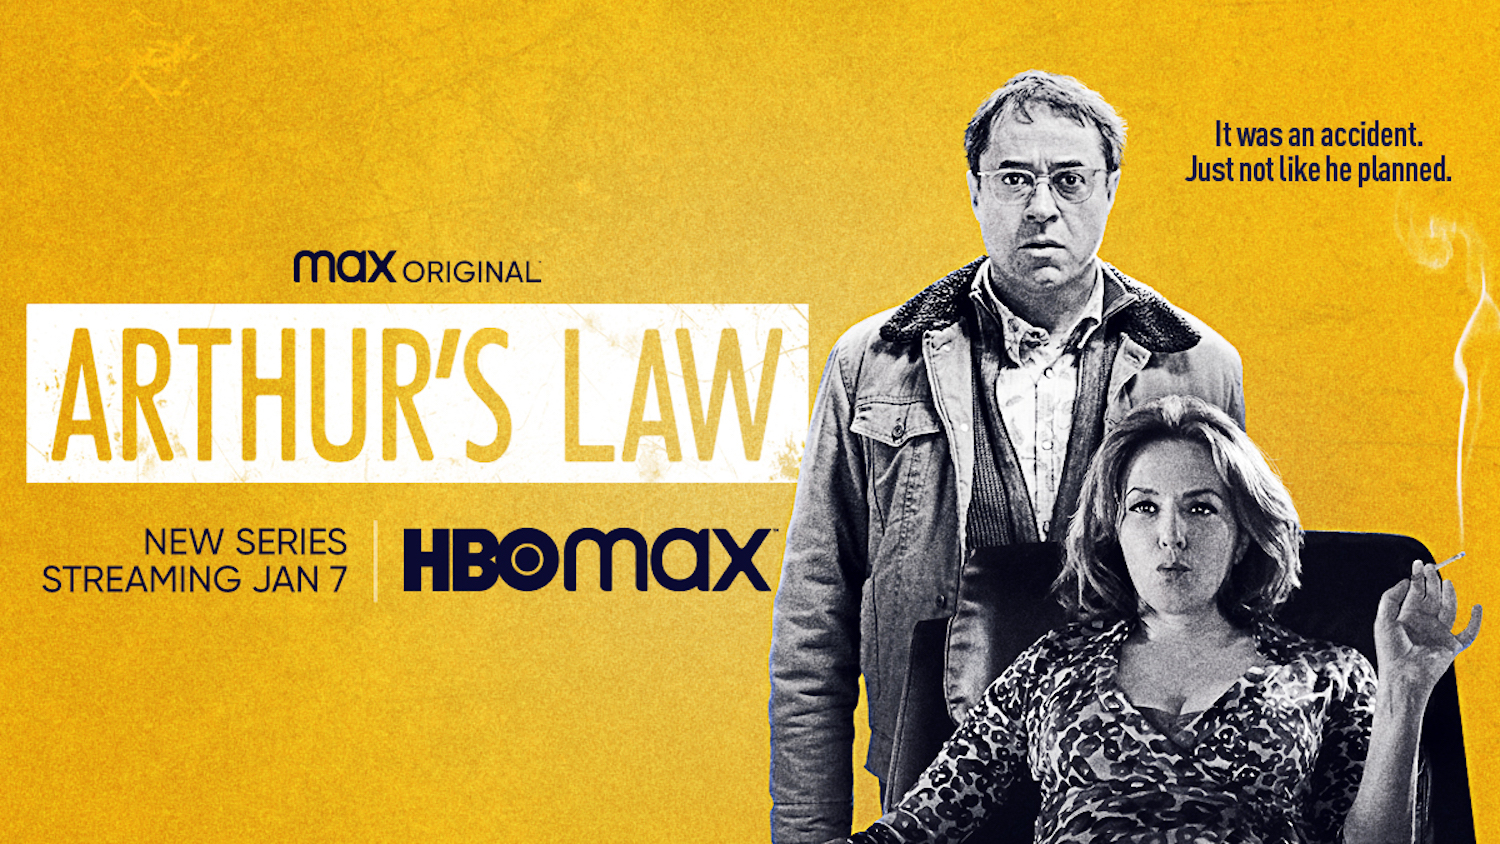 Award-Winning German Series, ARTHUR'S LAW, to Premiere Exclusively on HBO Max Starting January 7